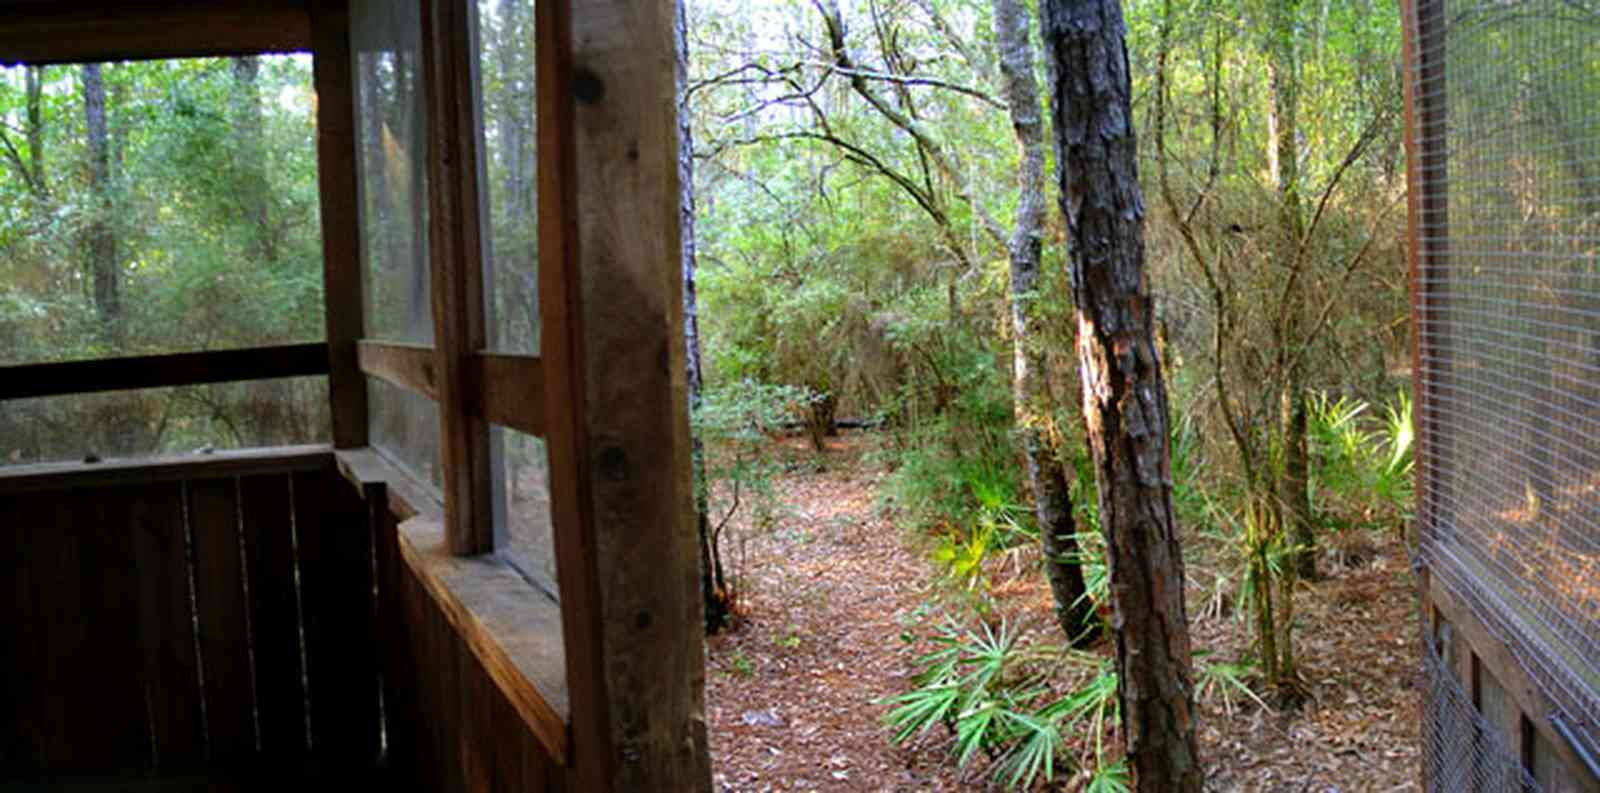 Milton:-Adventures-Unlimited_11.jpg:  screen porch, palmetto palm, forest, cabin, bunkhouse